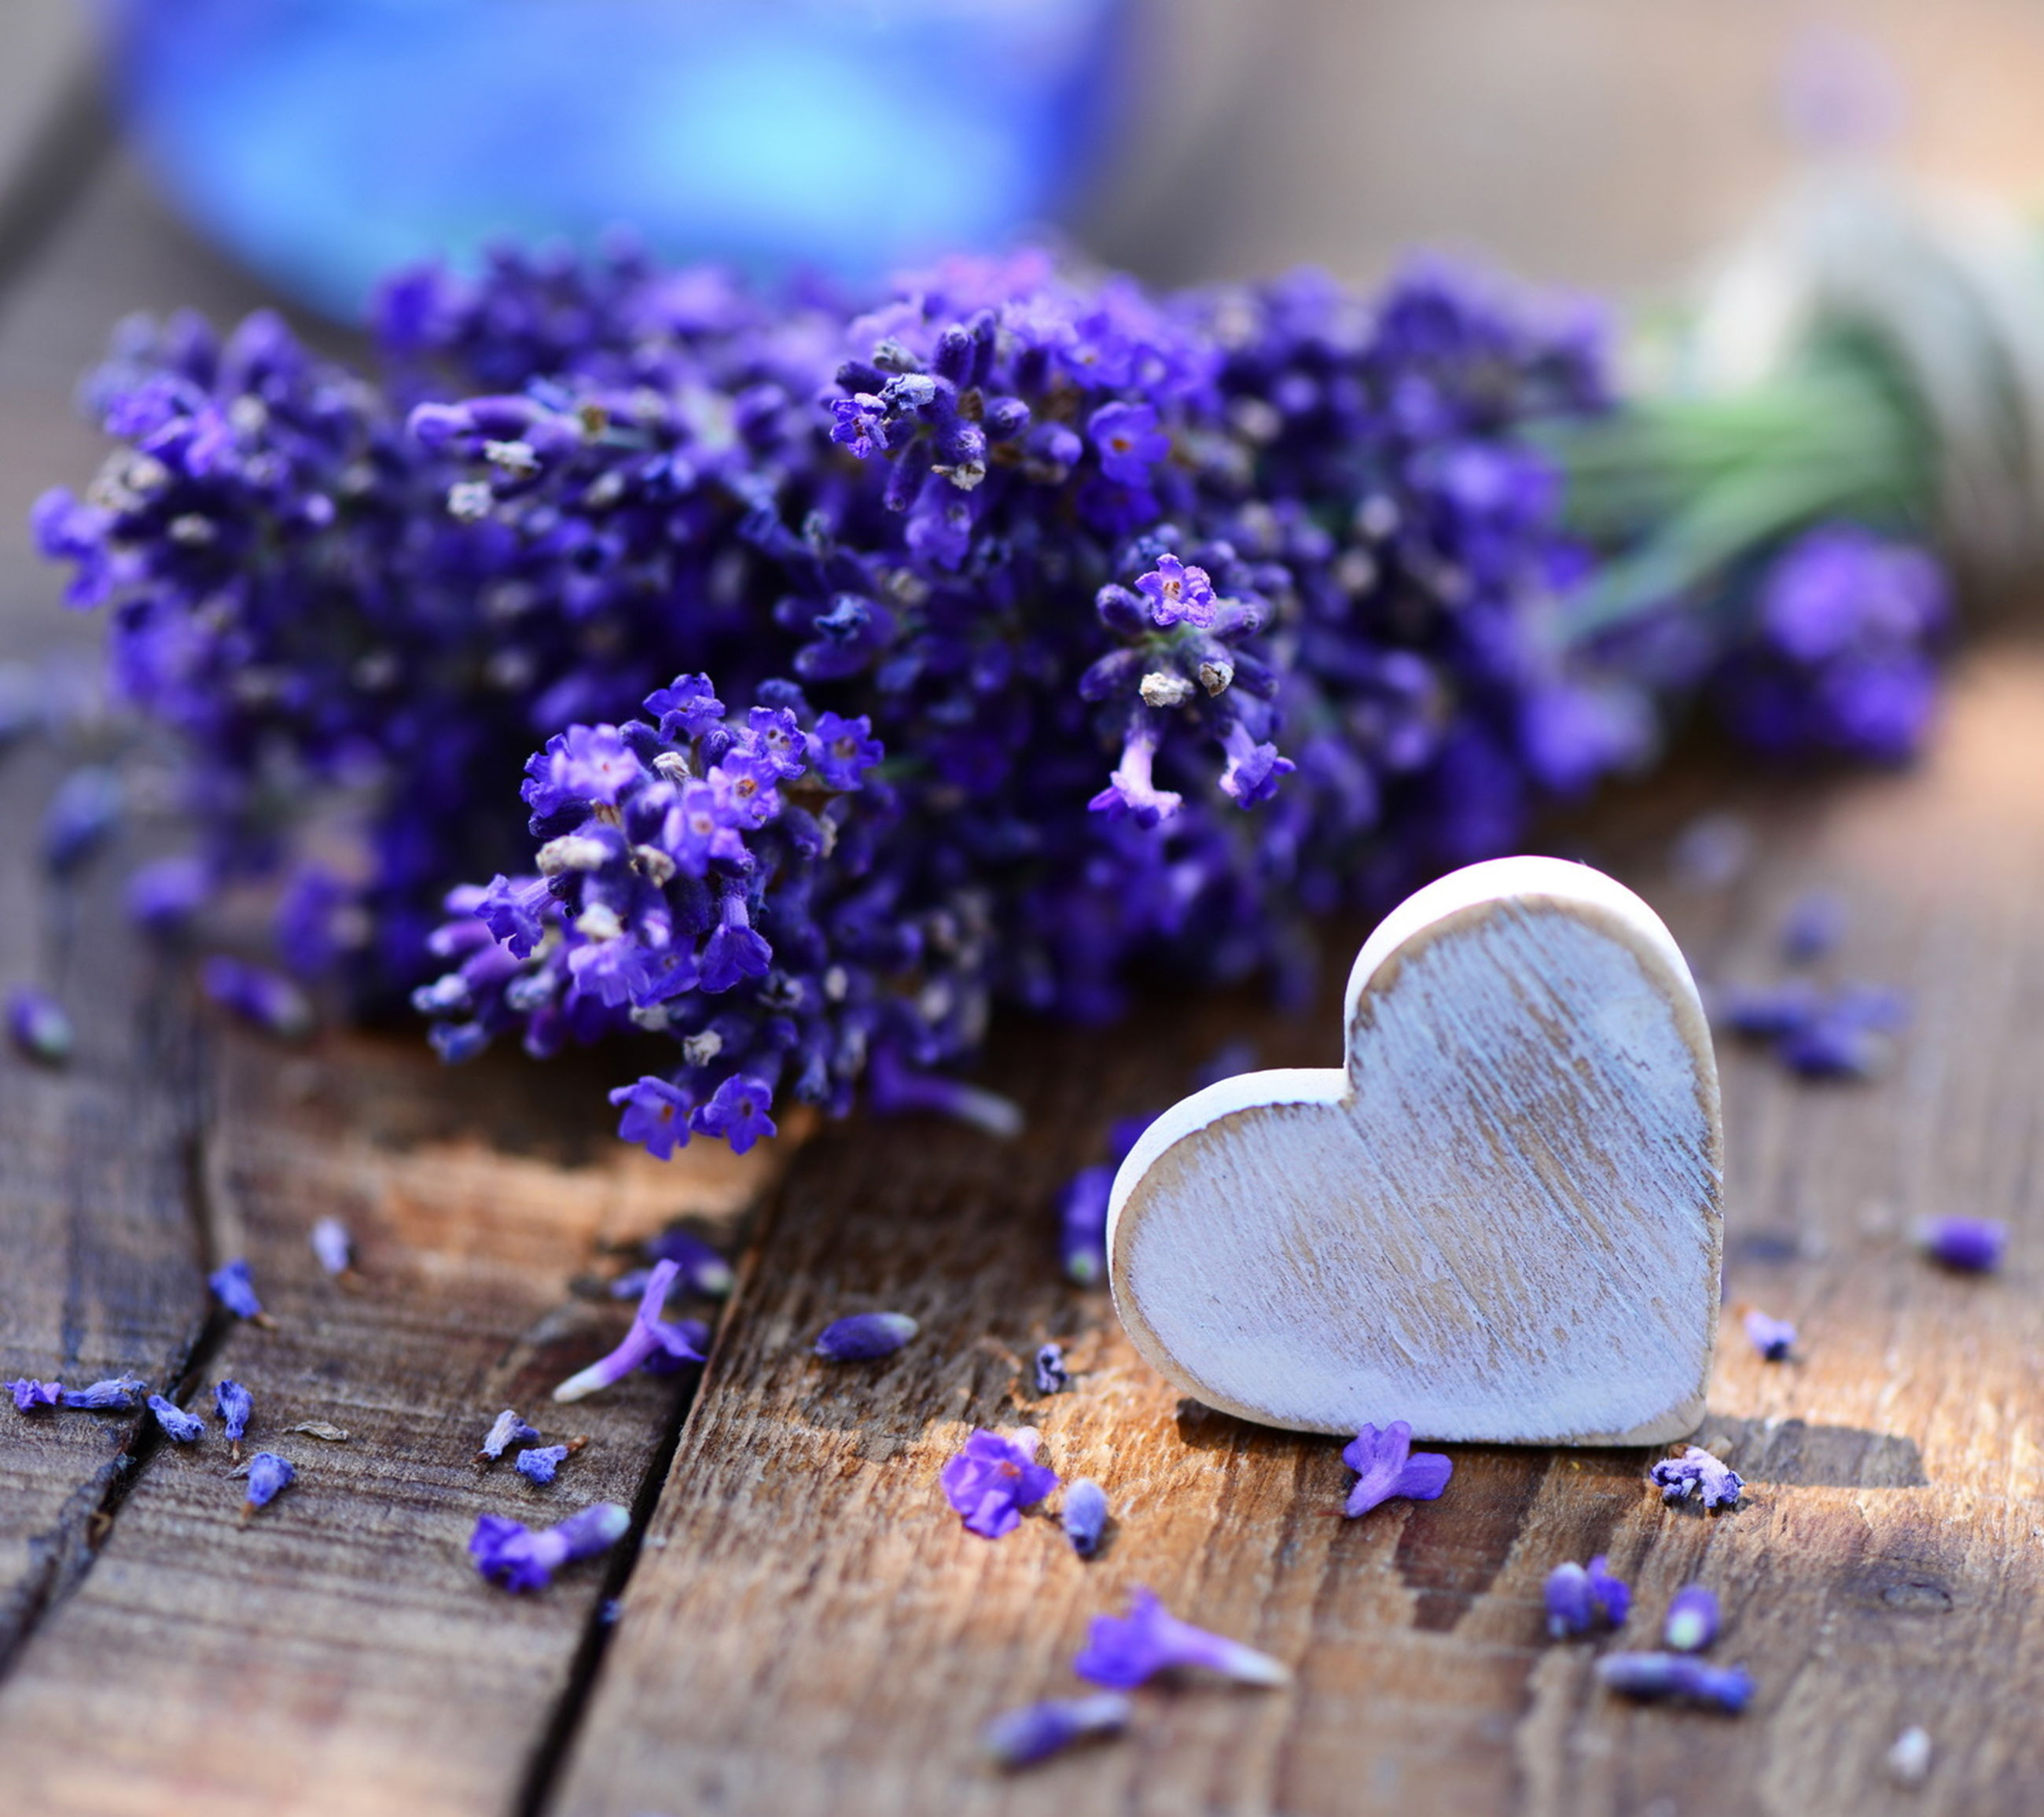 flower, close-up, selective focus, focus on foreground, purple, still life, table, fragility, blue, wood - material, indoors, no people, wooden, day, metal, freshness, high angle view, single object, growth